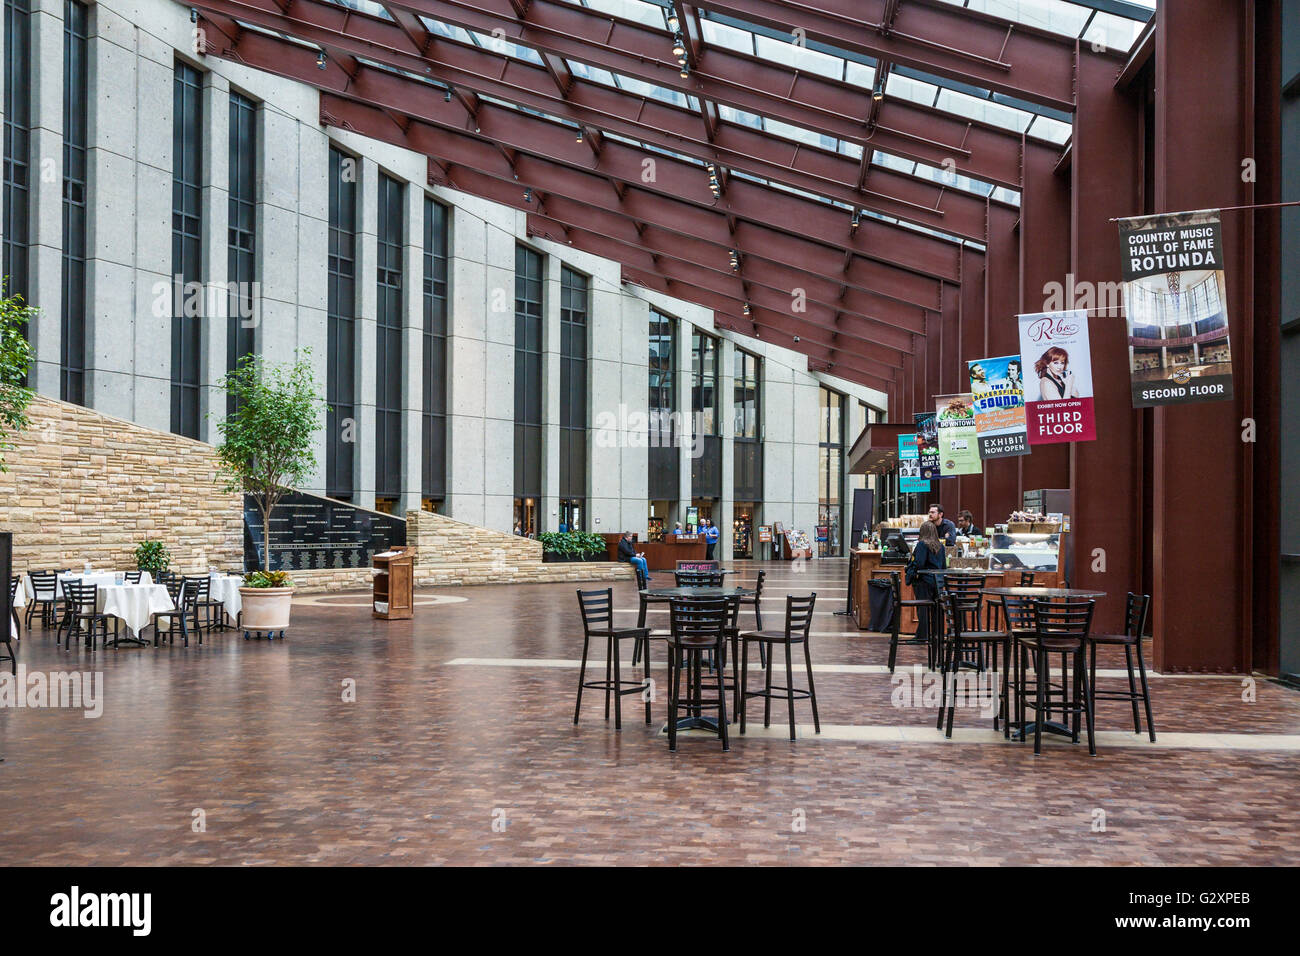 Interior Of Lobby Of The Country Music Hall Of Fame And Museum In Downtown Nashville Tennessee Stock Photo Alamy